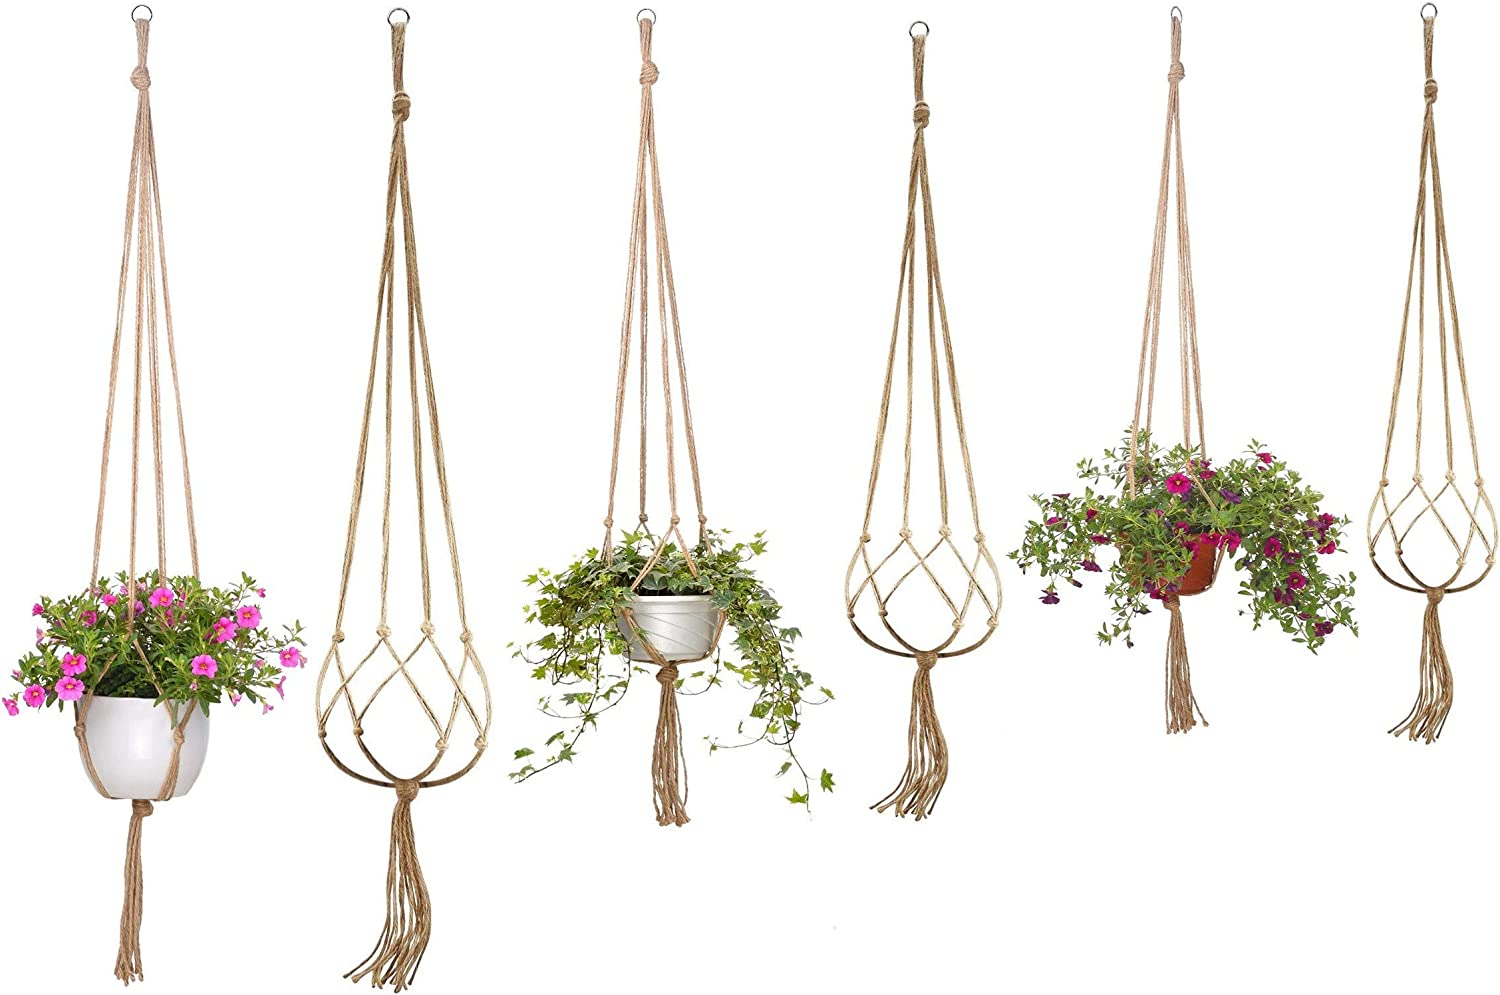 "Onwon Macrame Plant Hanger Basket Liners with Country Style Natural Jute, Elegant for Home Garden, Patio and Office, Indoor & Outdoor Decoration, ONLY Hanger, NO Plant or Pot (6, 48"", 41"", 35"")"